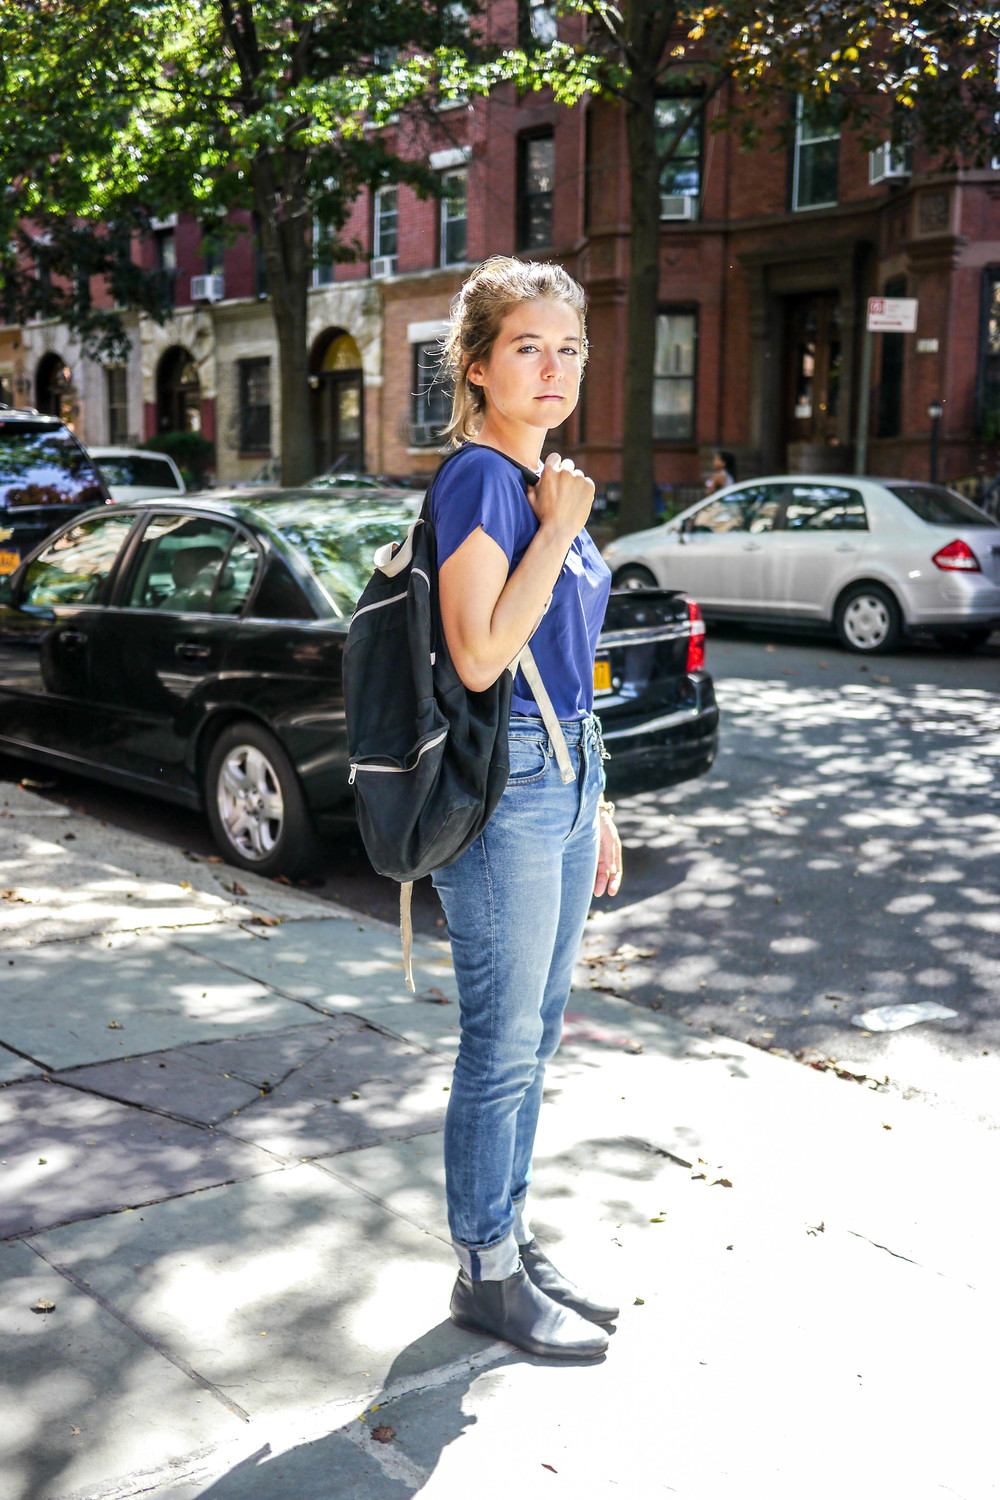 Top: Anna & Frank,    Jeans: Alexander Wang   ,    Bag: American Apparel   ,    Boots: FRYE